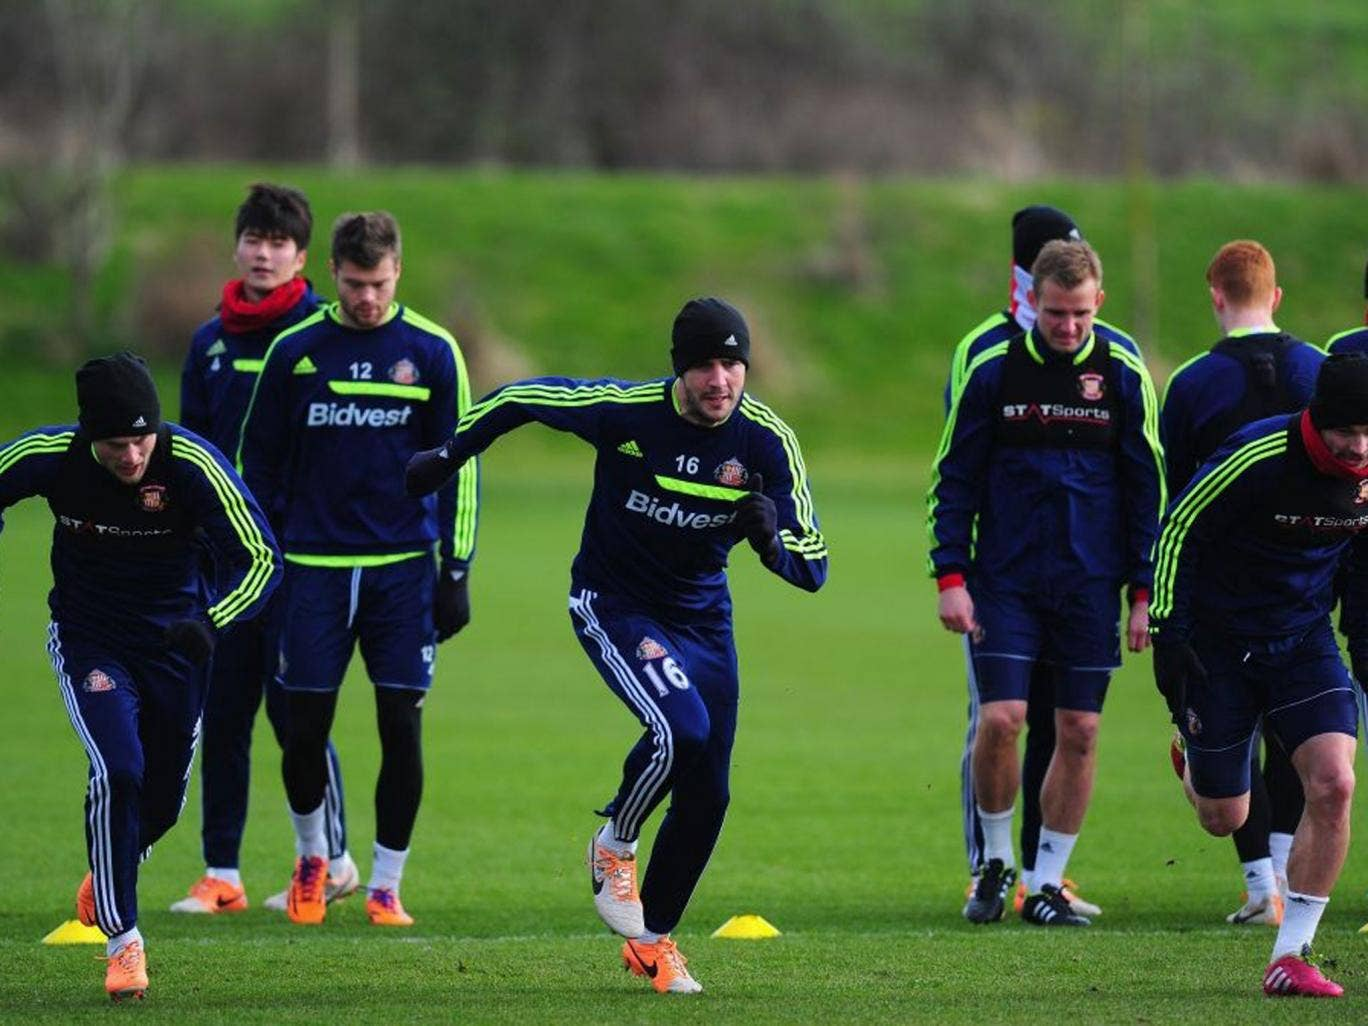 On your marks: Sunderland players in training yesterday as they gear up for their big day out at Wembley